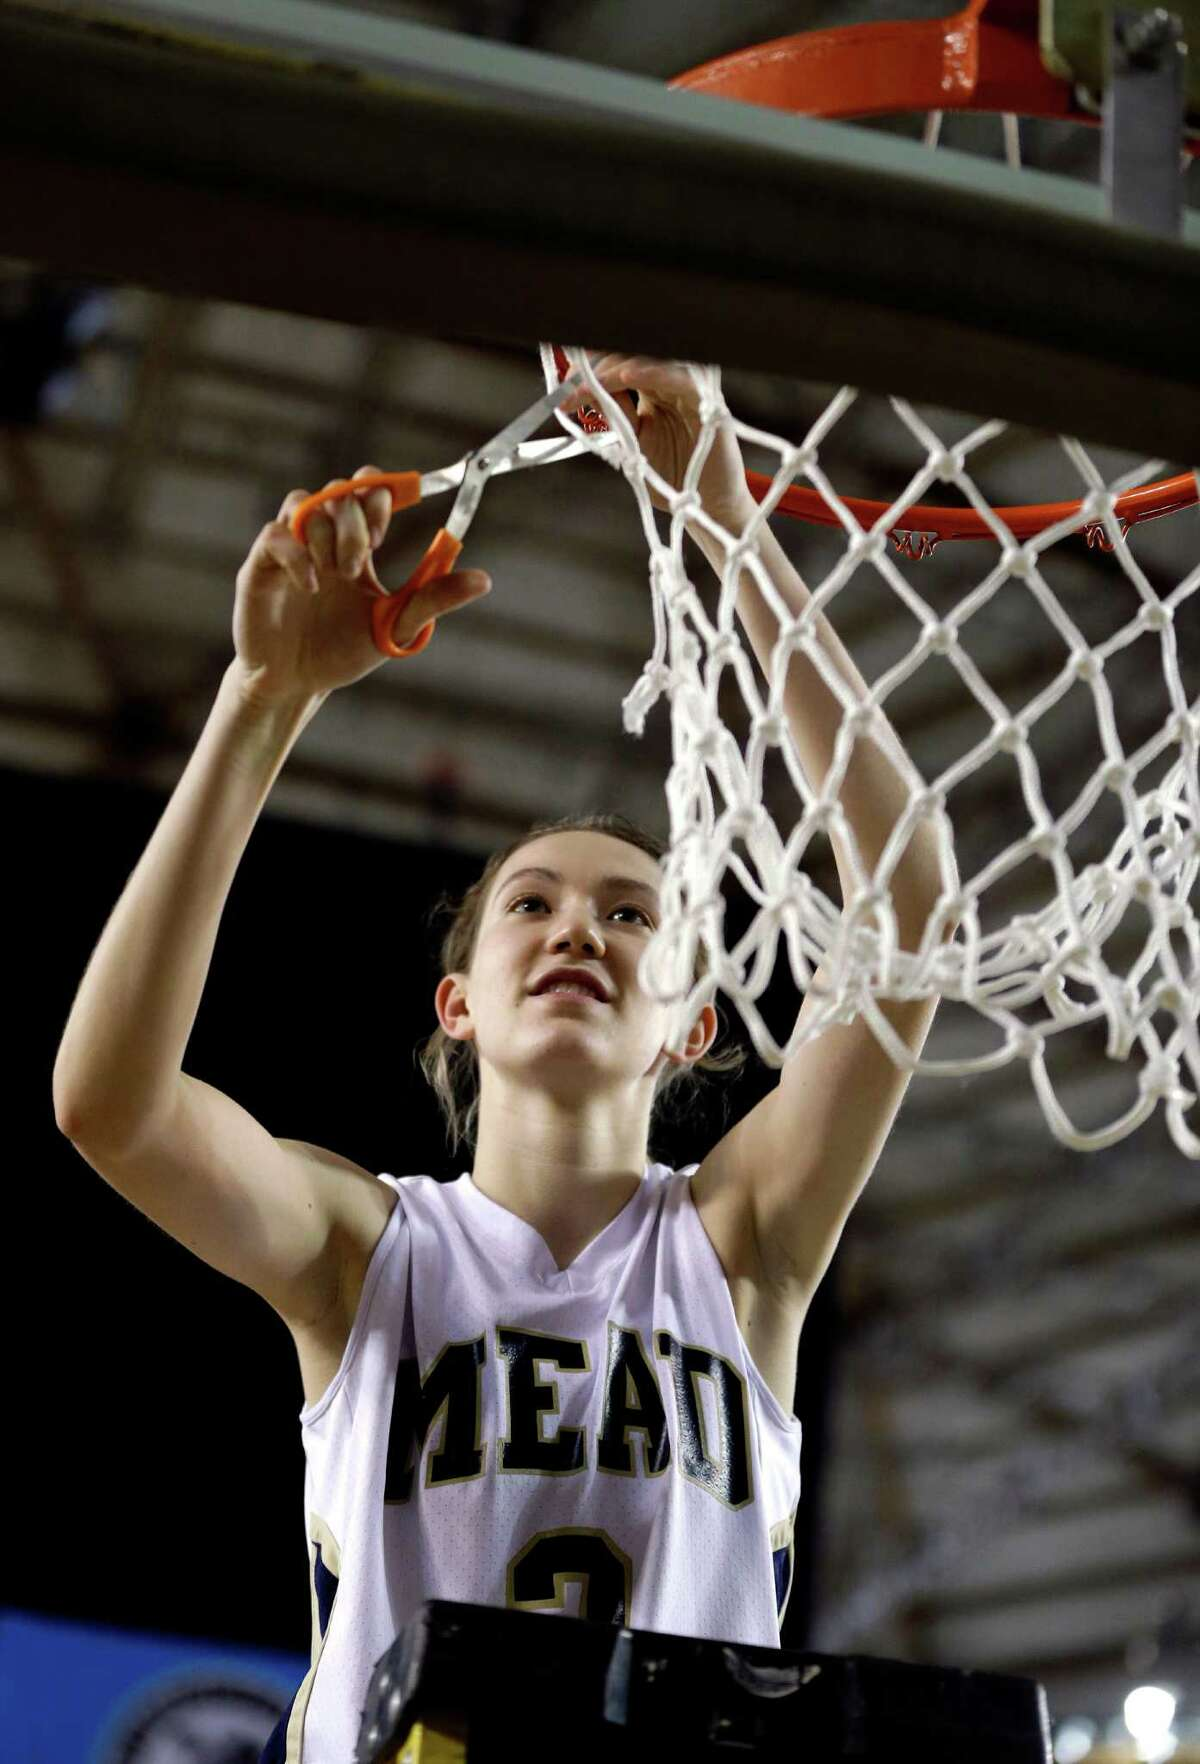 Mead's Sue Winger helps cut down the net after Mead defeated Arlington 58-42 to win the division 4A girls high school basketball championship, Saturday, March 2, 2013, in Tacoma, Wash.